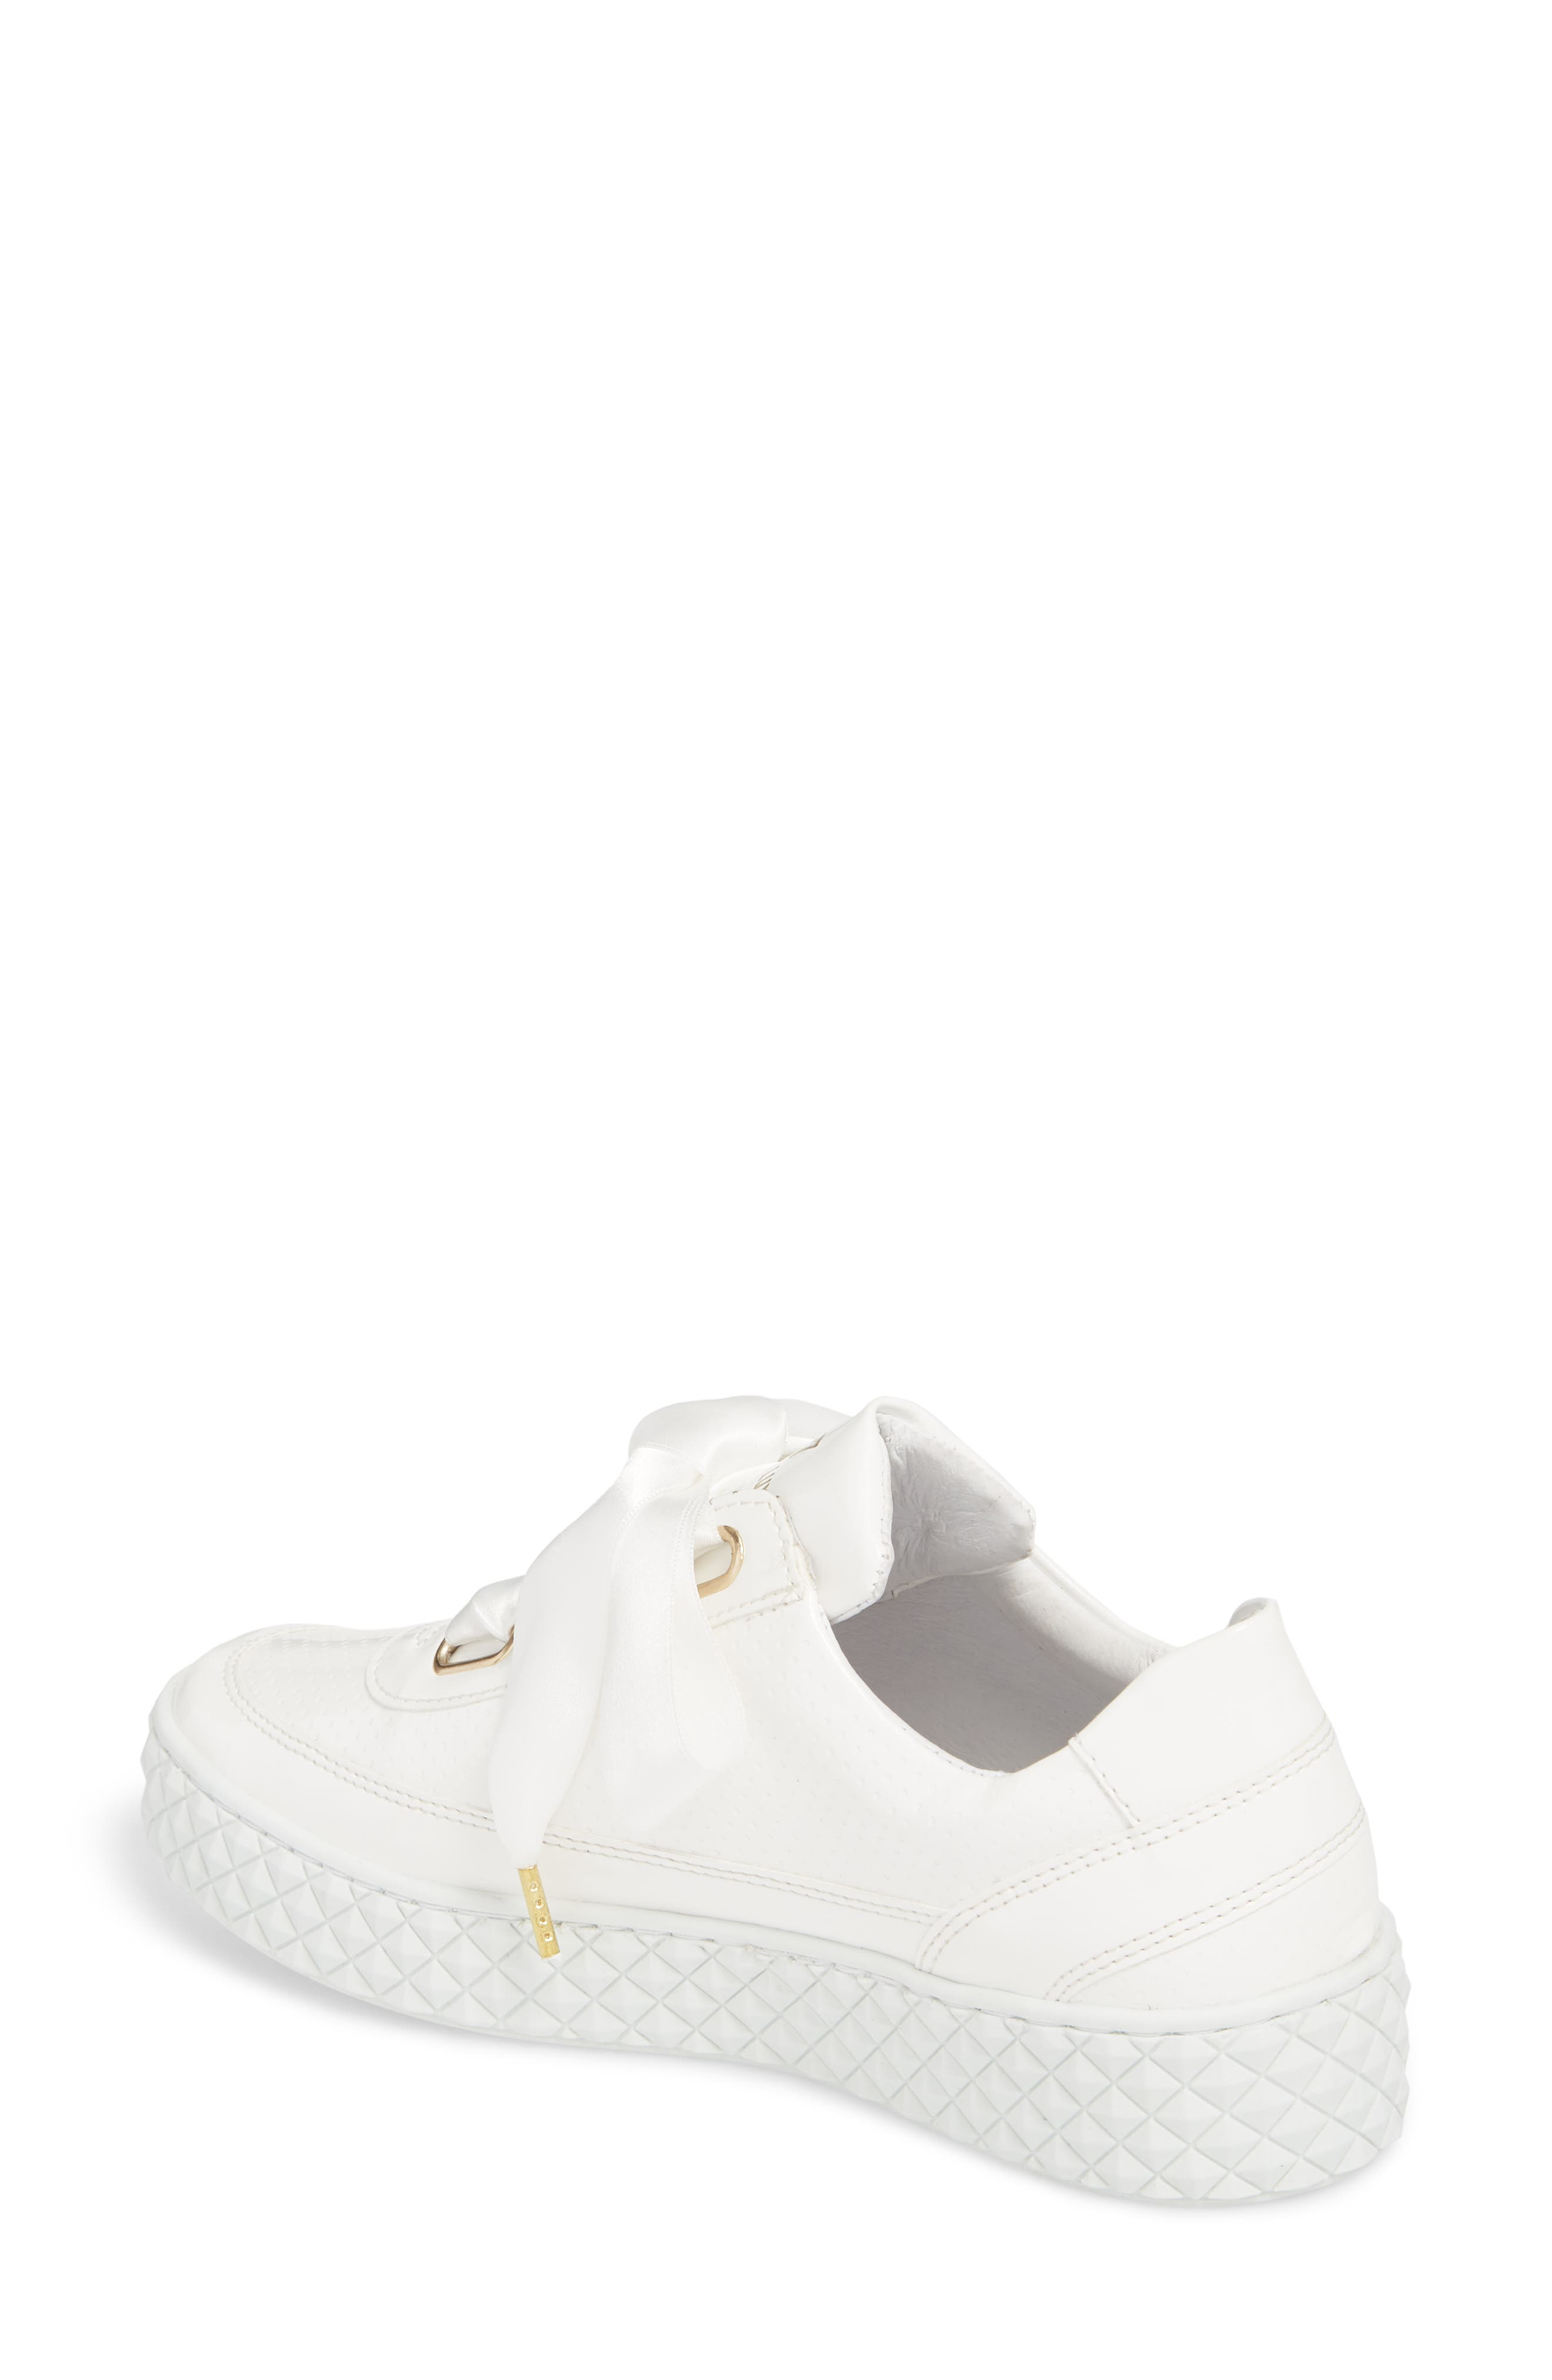 Montreal II Sneaker,                             Alternate thumbnail 2, color,                             White Leather